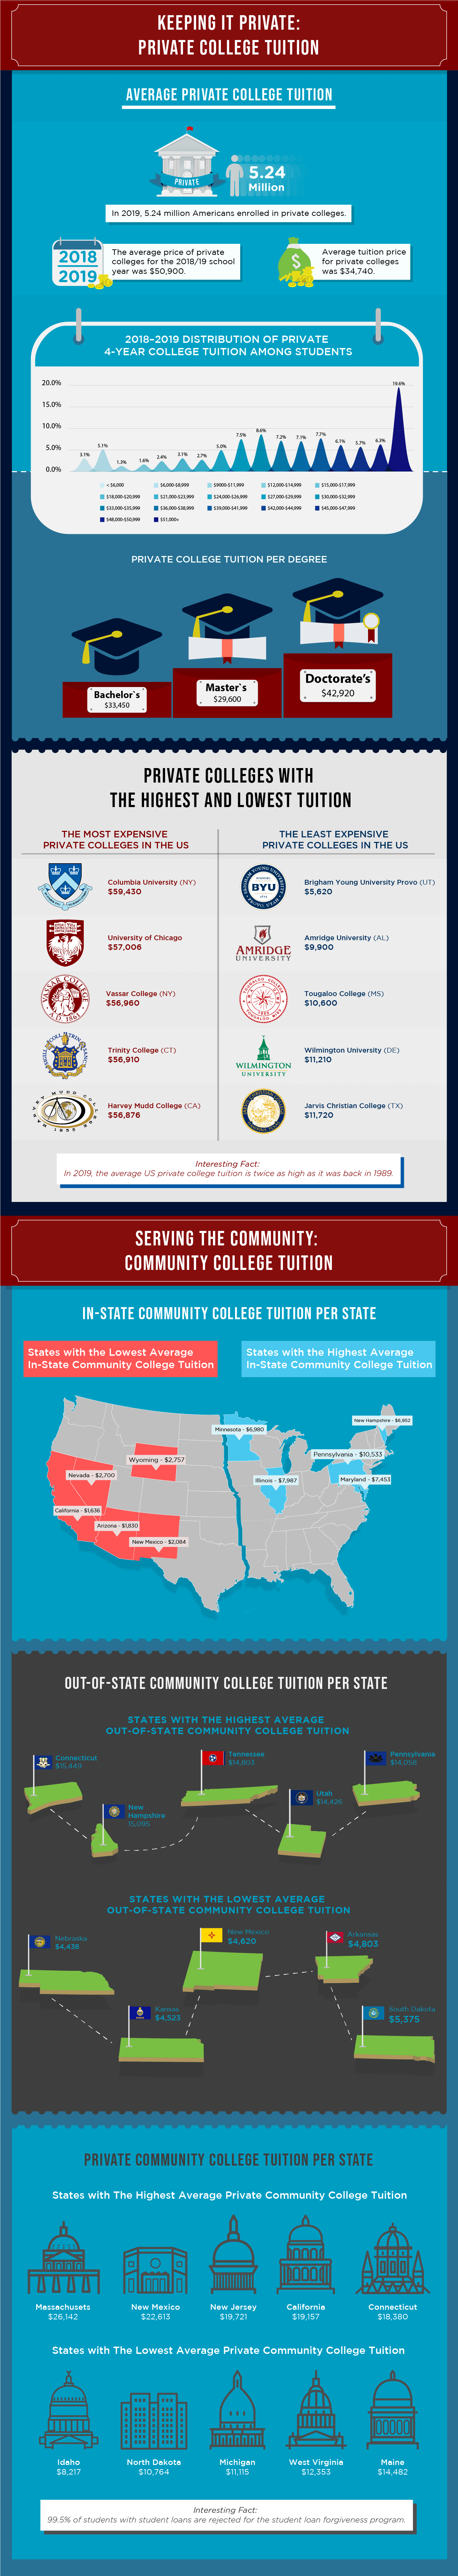 Average College Tuition In America [Infographic] 3